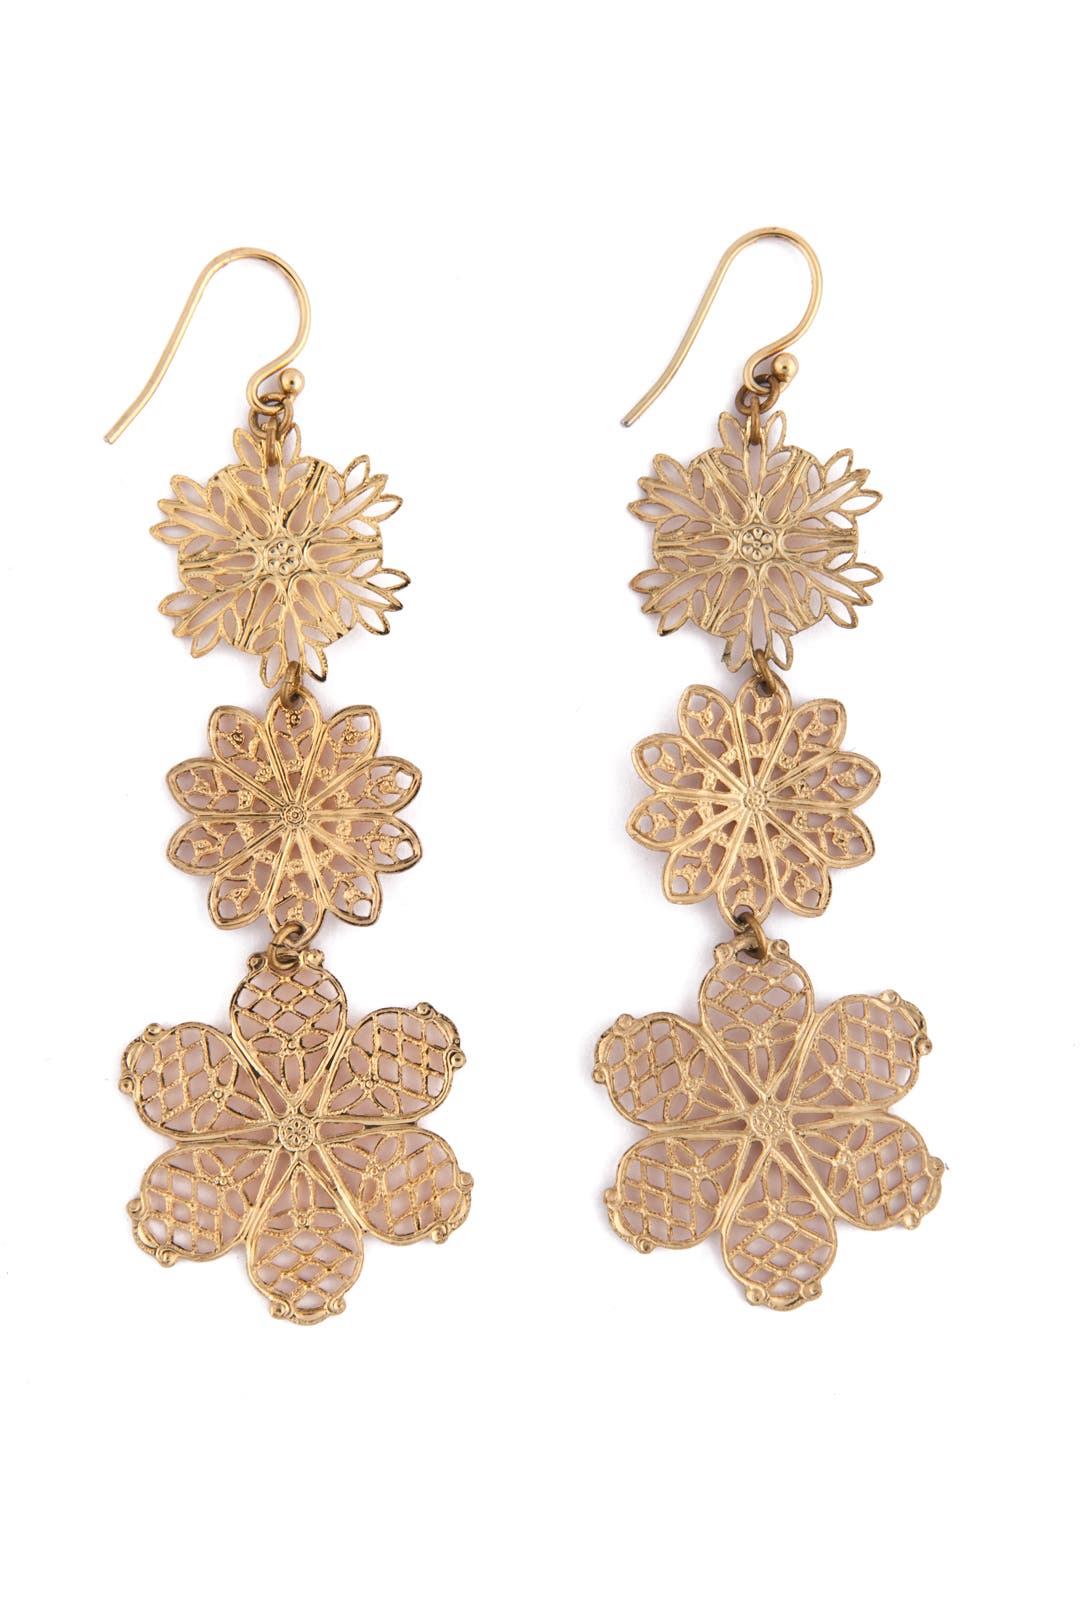 Delicate Filigree Flower Earrings by AV Max